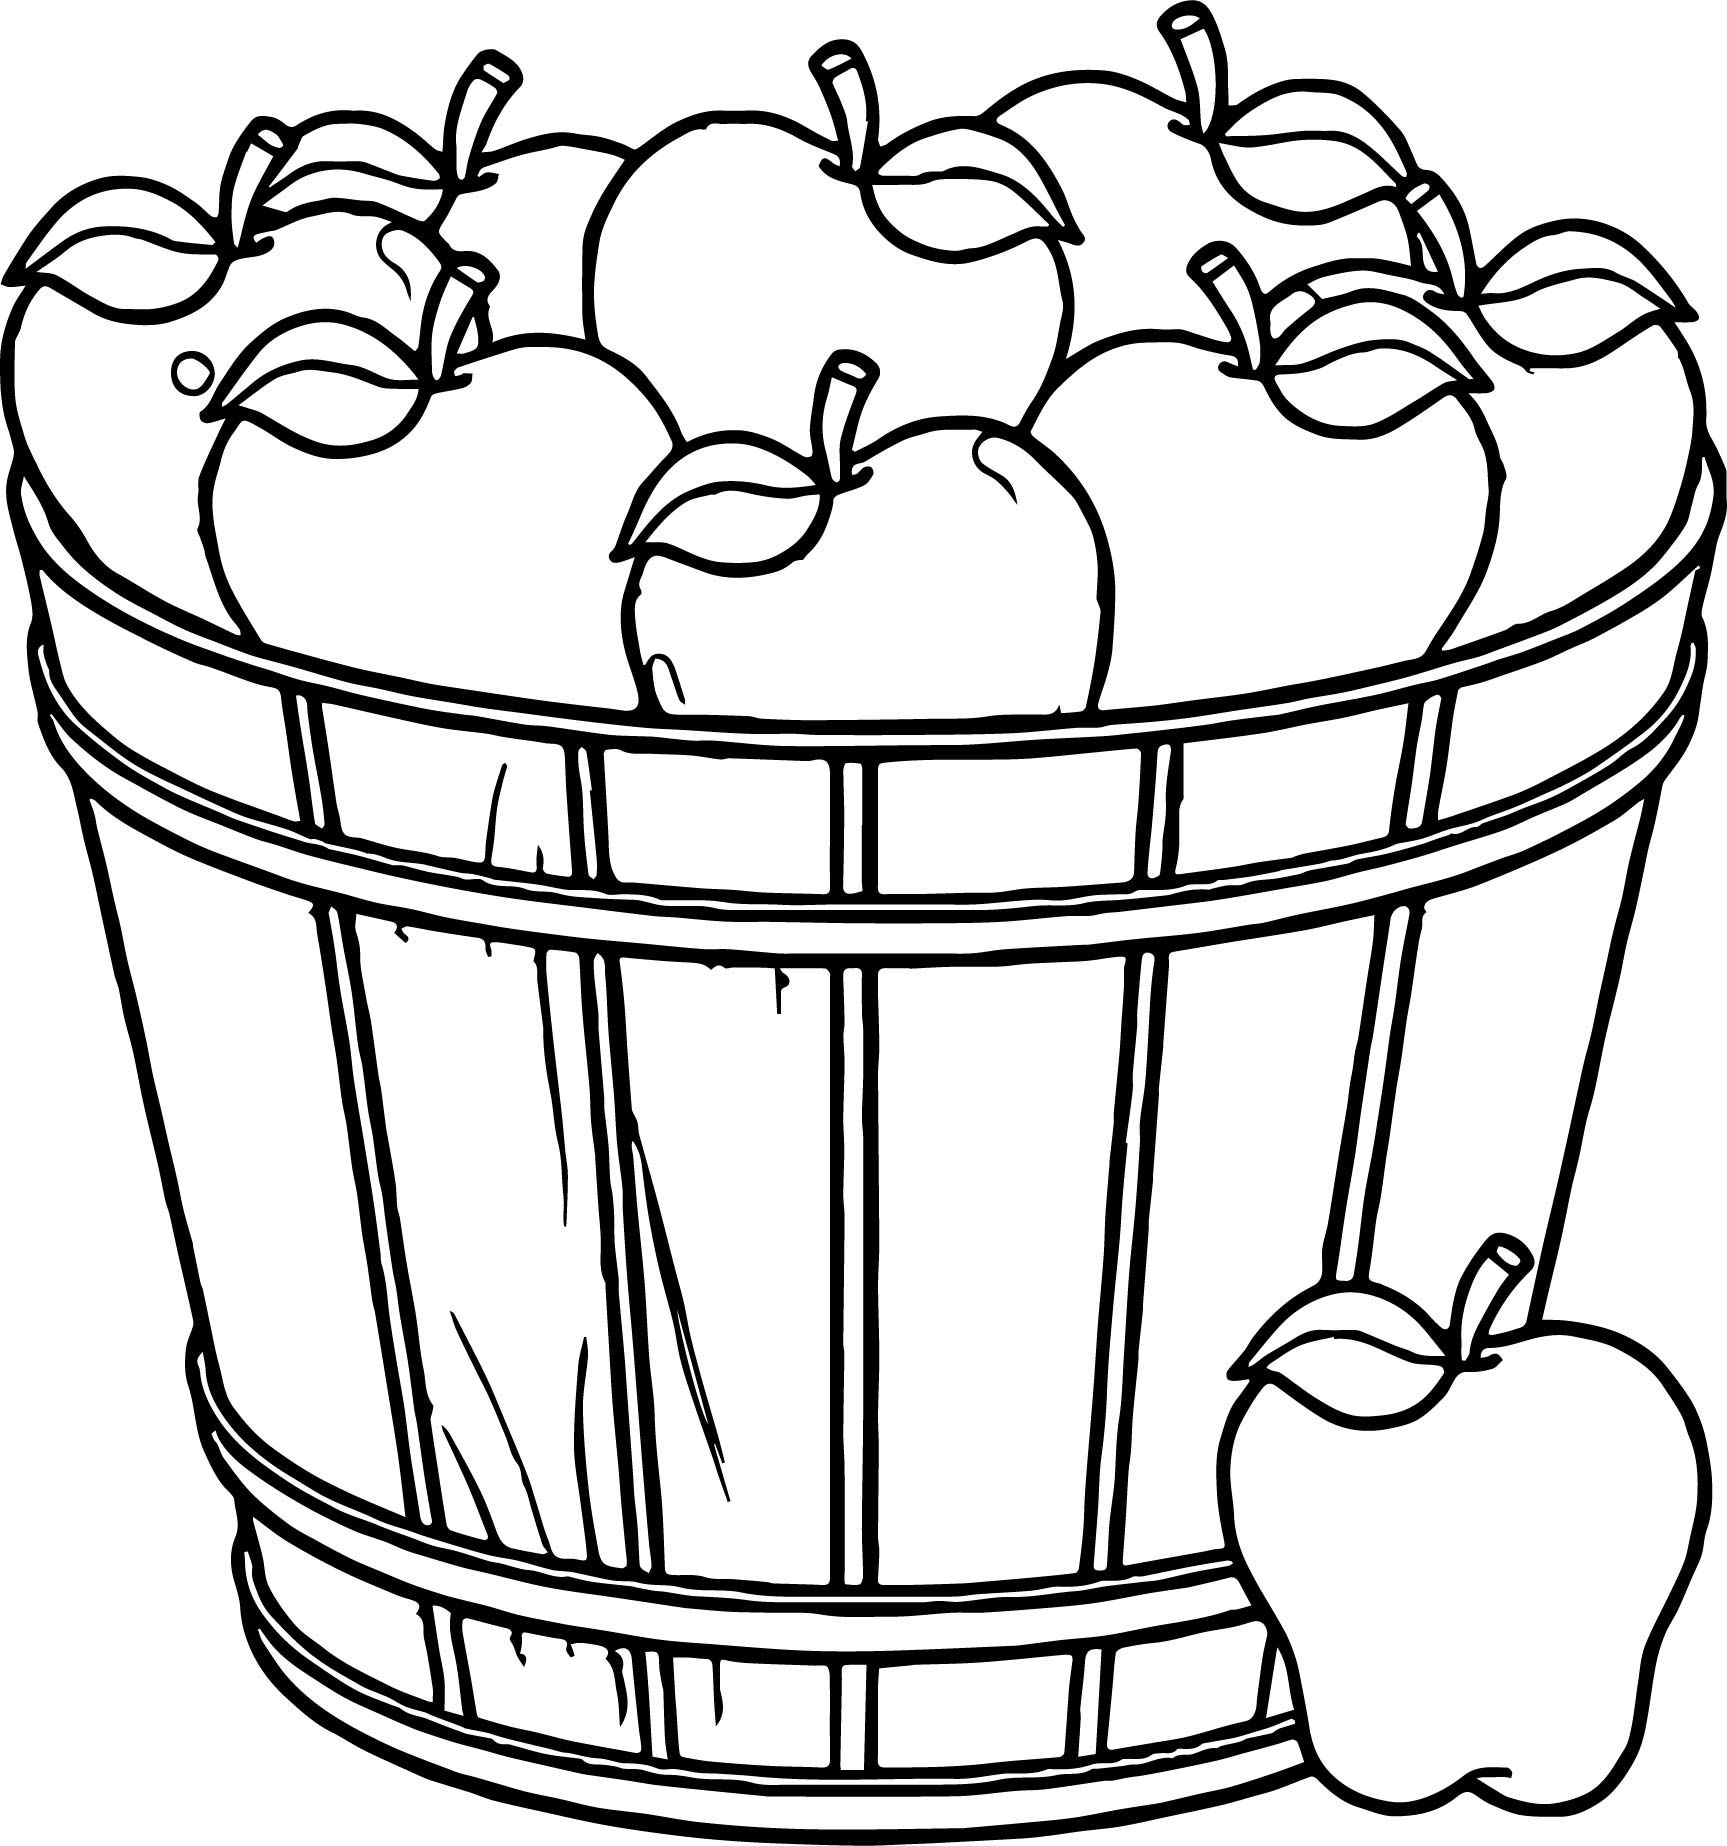 410 Top Coloring Pages Of Apples In A Basket  Images